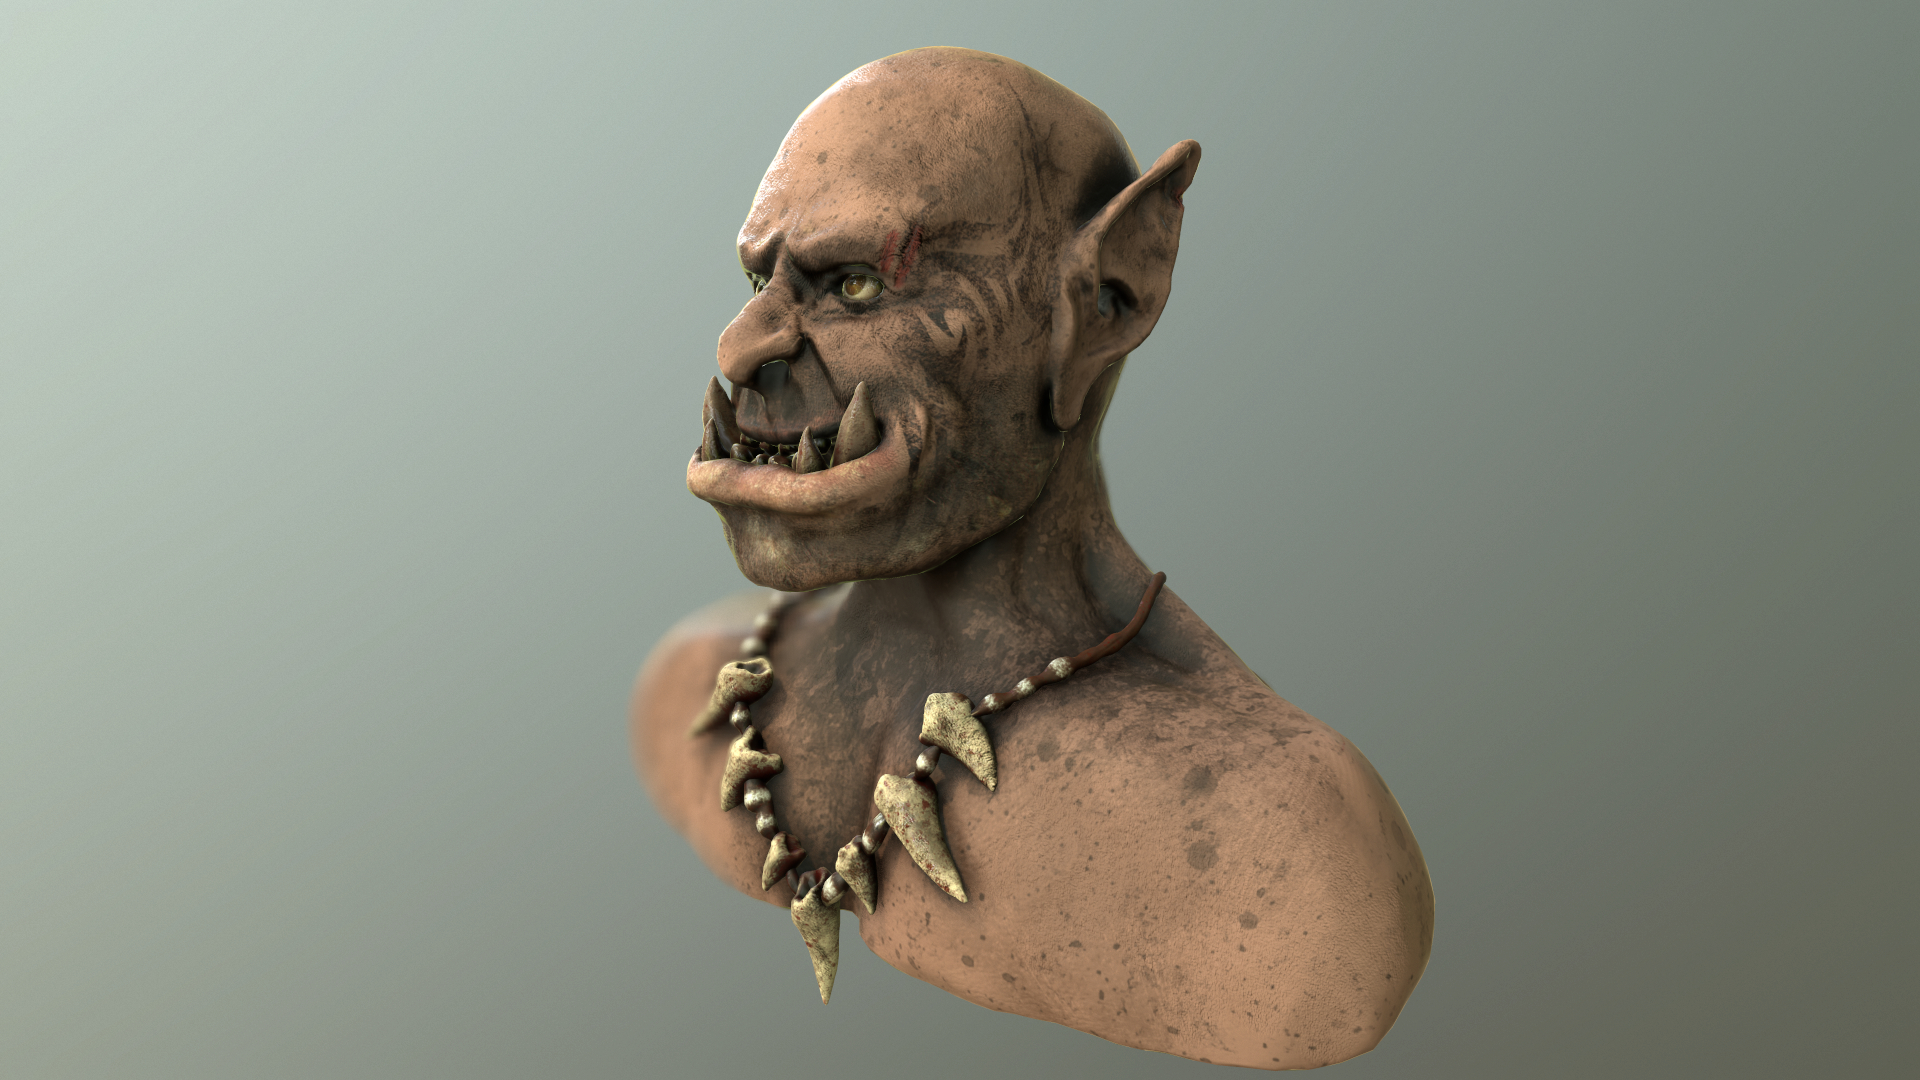 Orc in ZBrush Other image